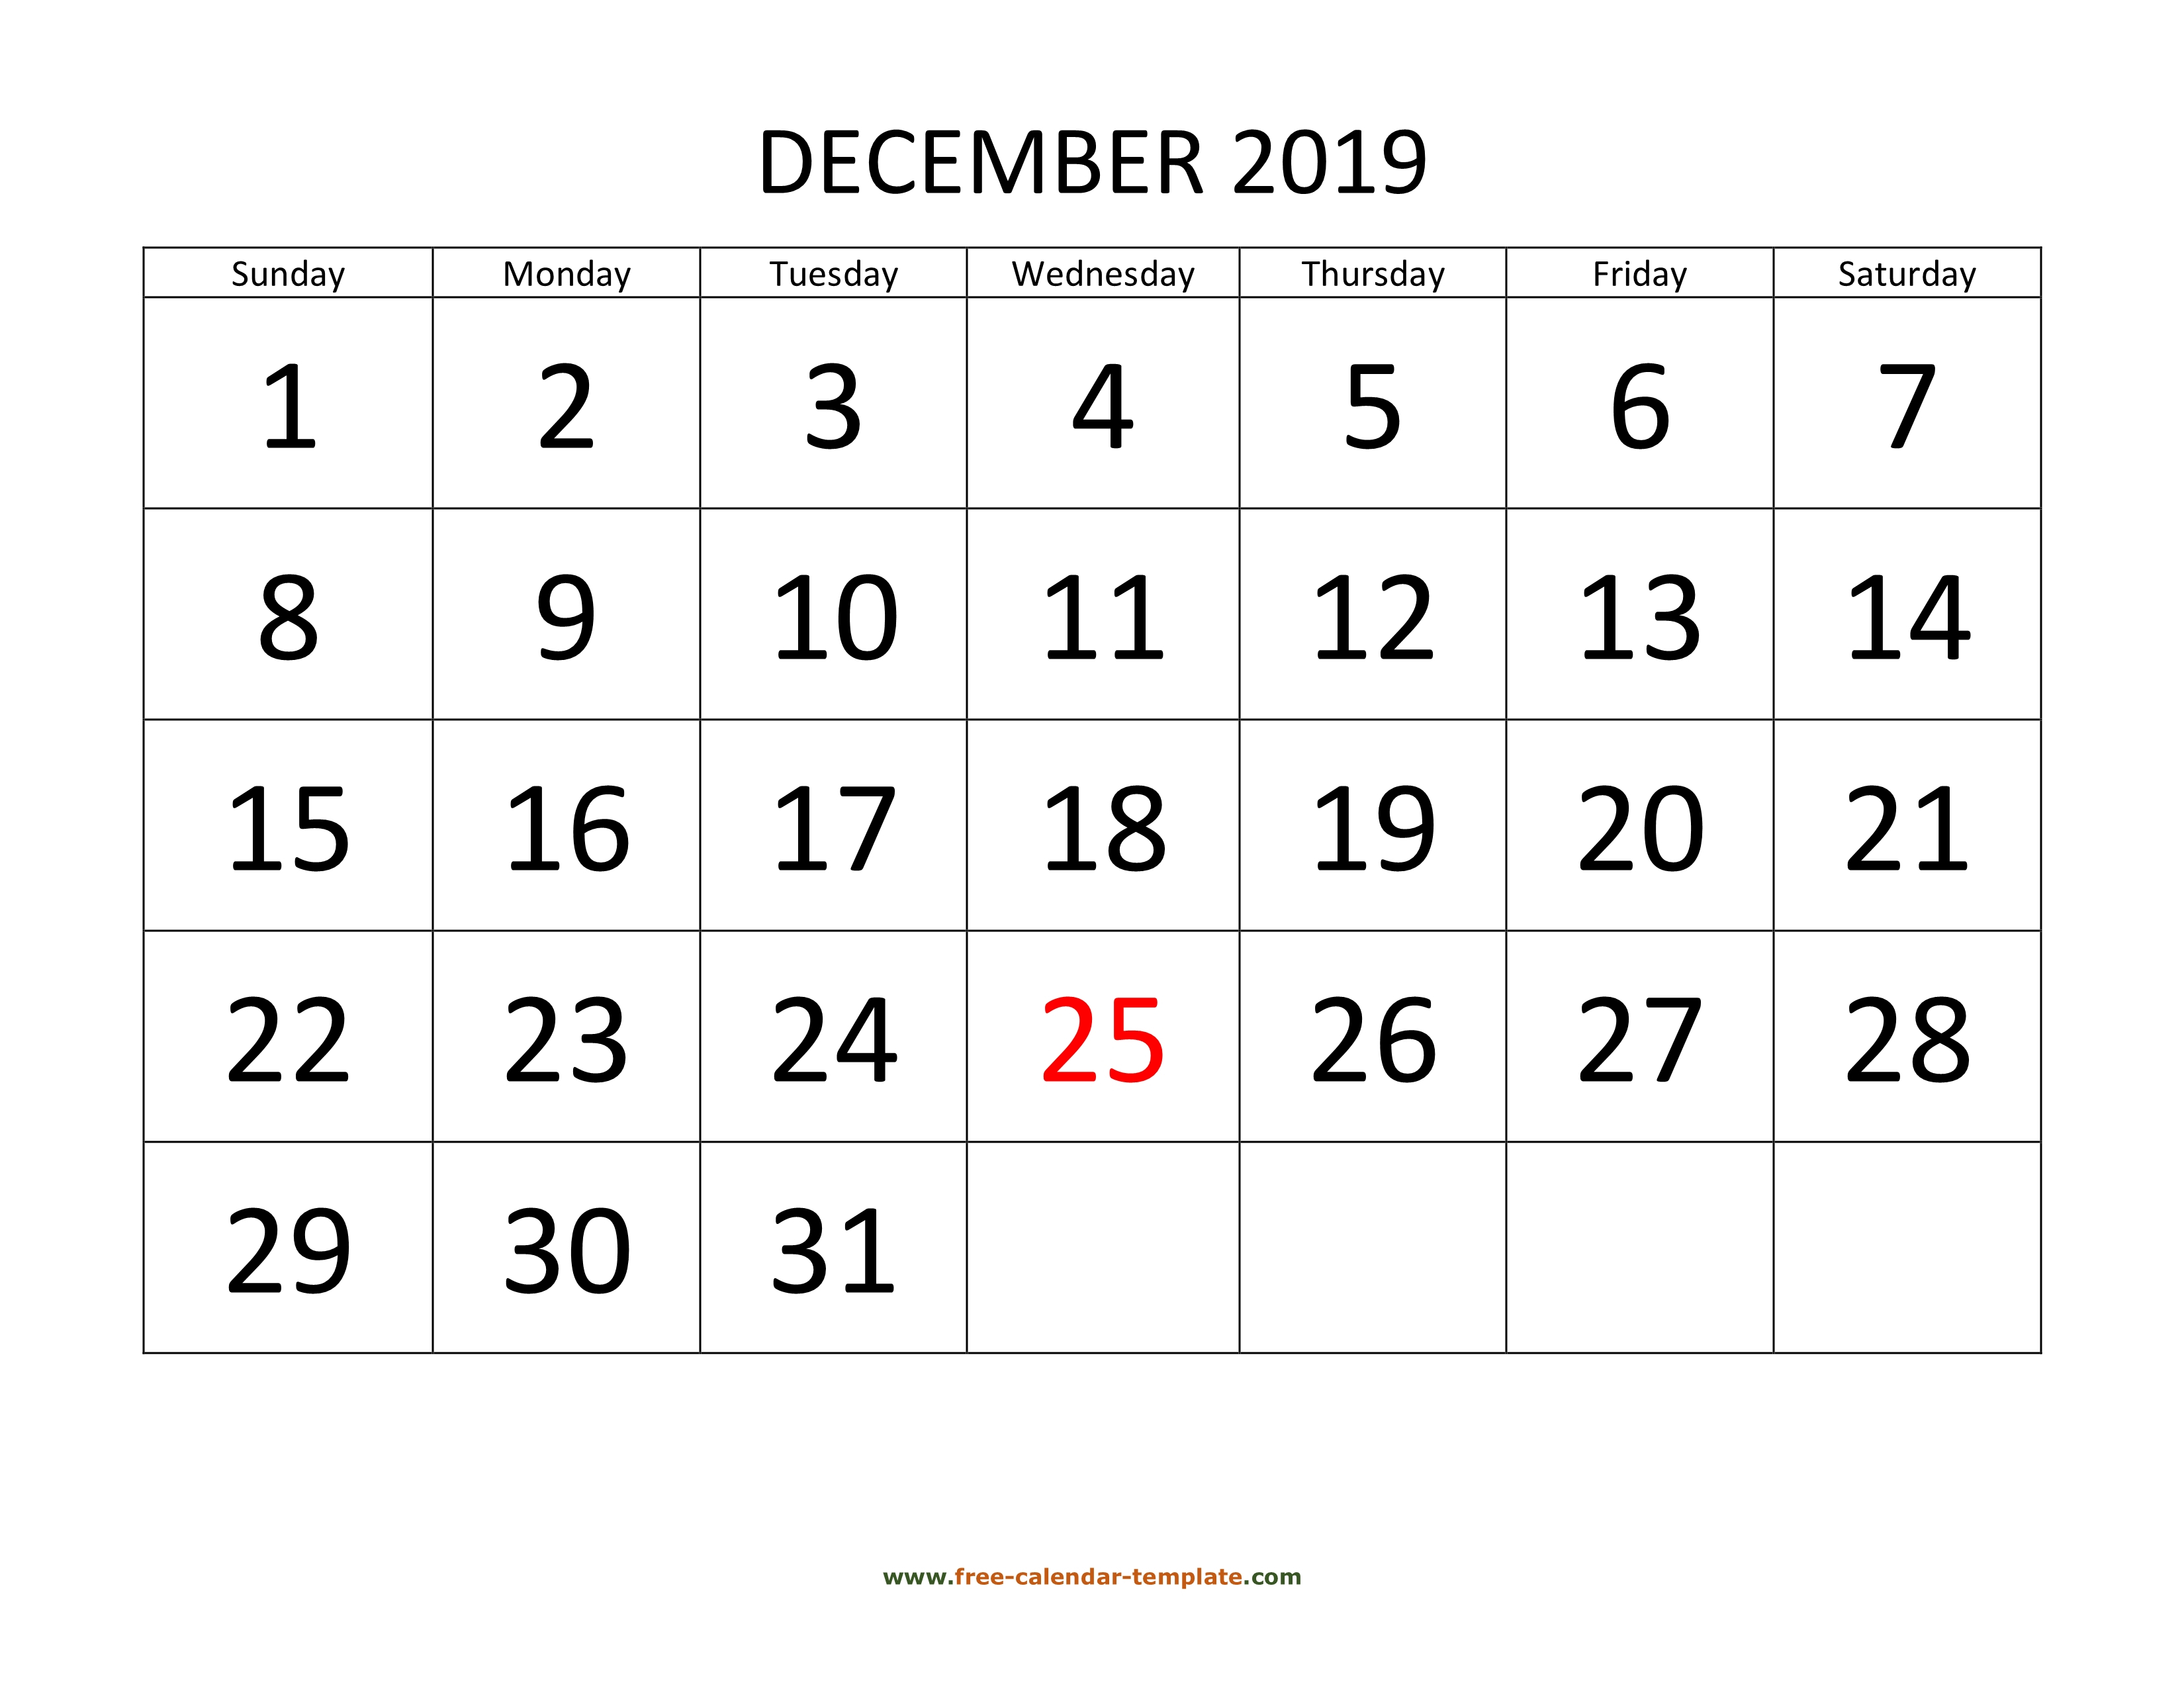 December 2019 Free Calendar Tempplate | Freecalendar in Calendar With Large Squares